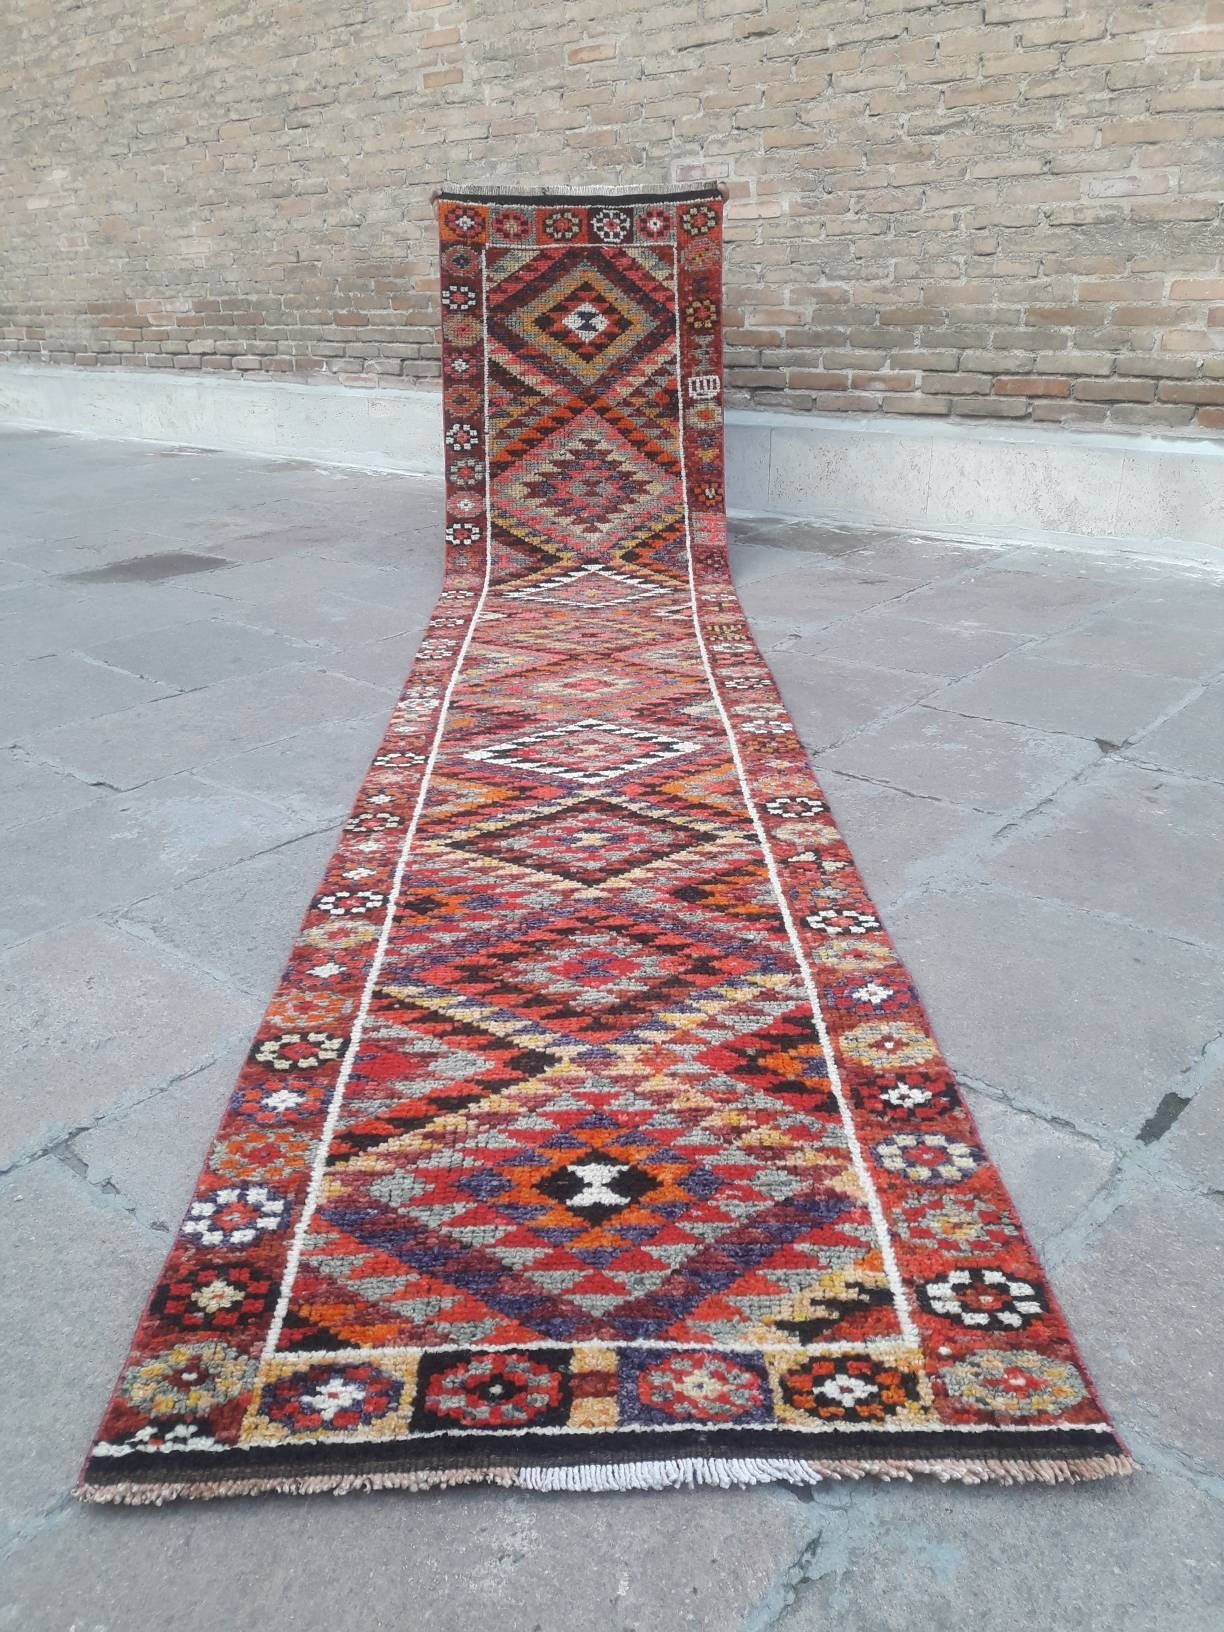 Excited To Share The Latest Addition To My Shop 3 X 13 Oushak Rug Runner 2 39 6 Quot X 13 39 3 Quot Ft Vintage O In 2020 Vintage Oushak Rug Rug Runner Oushak Rug